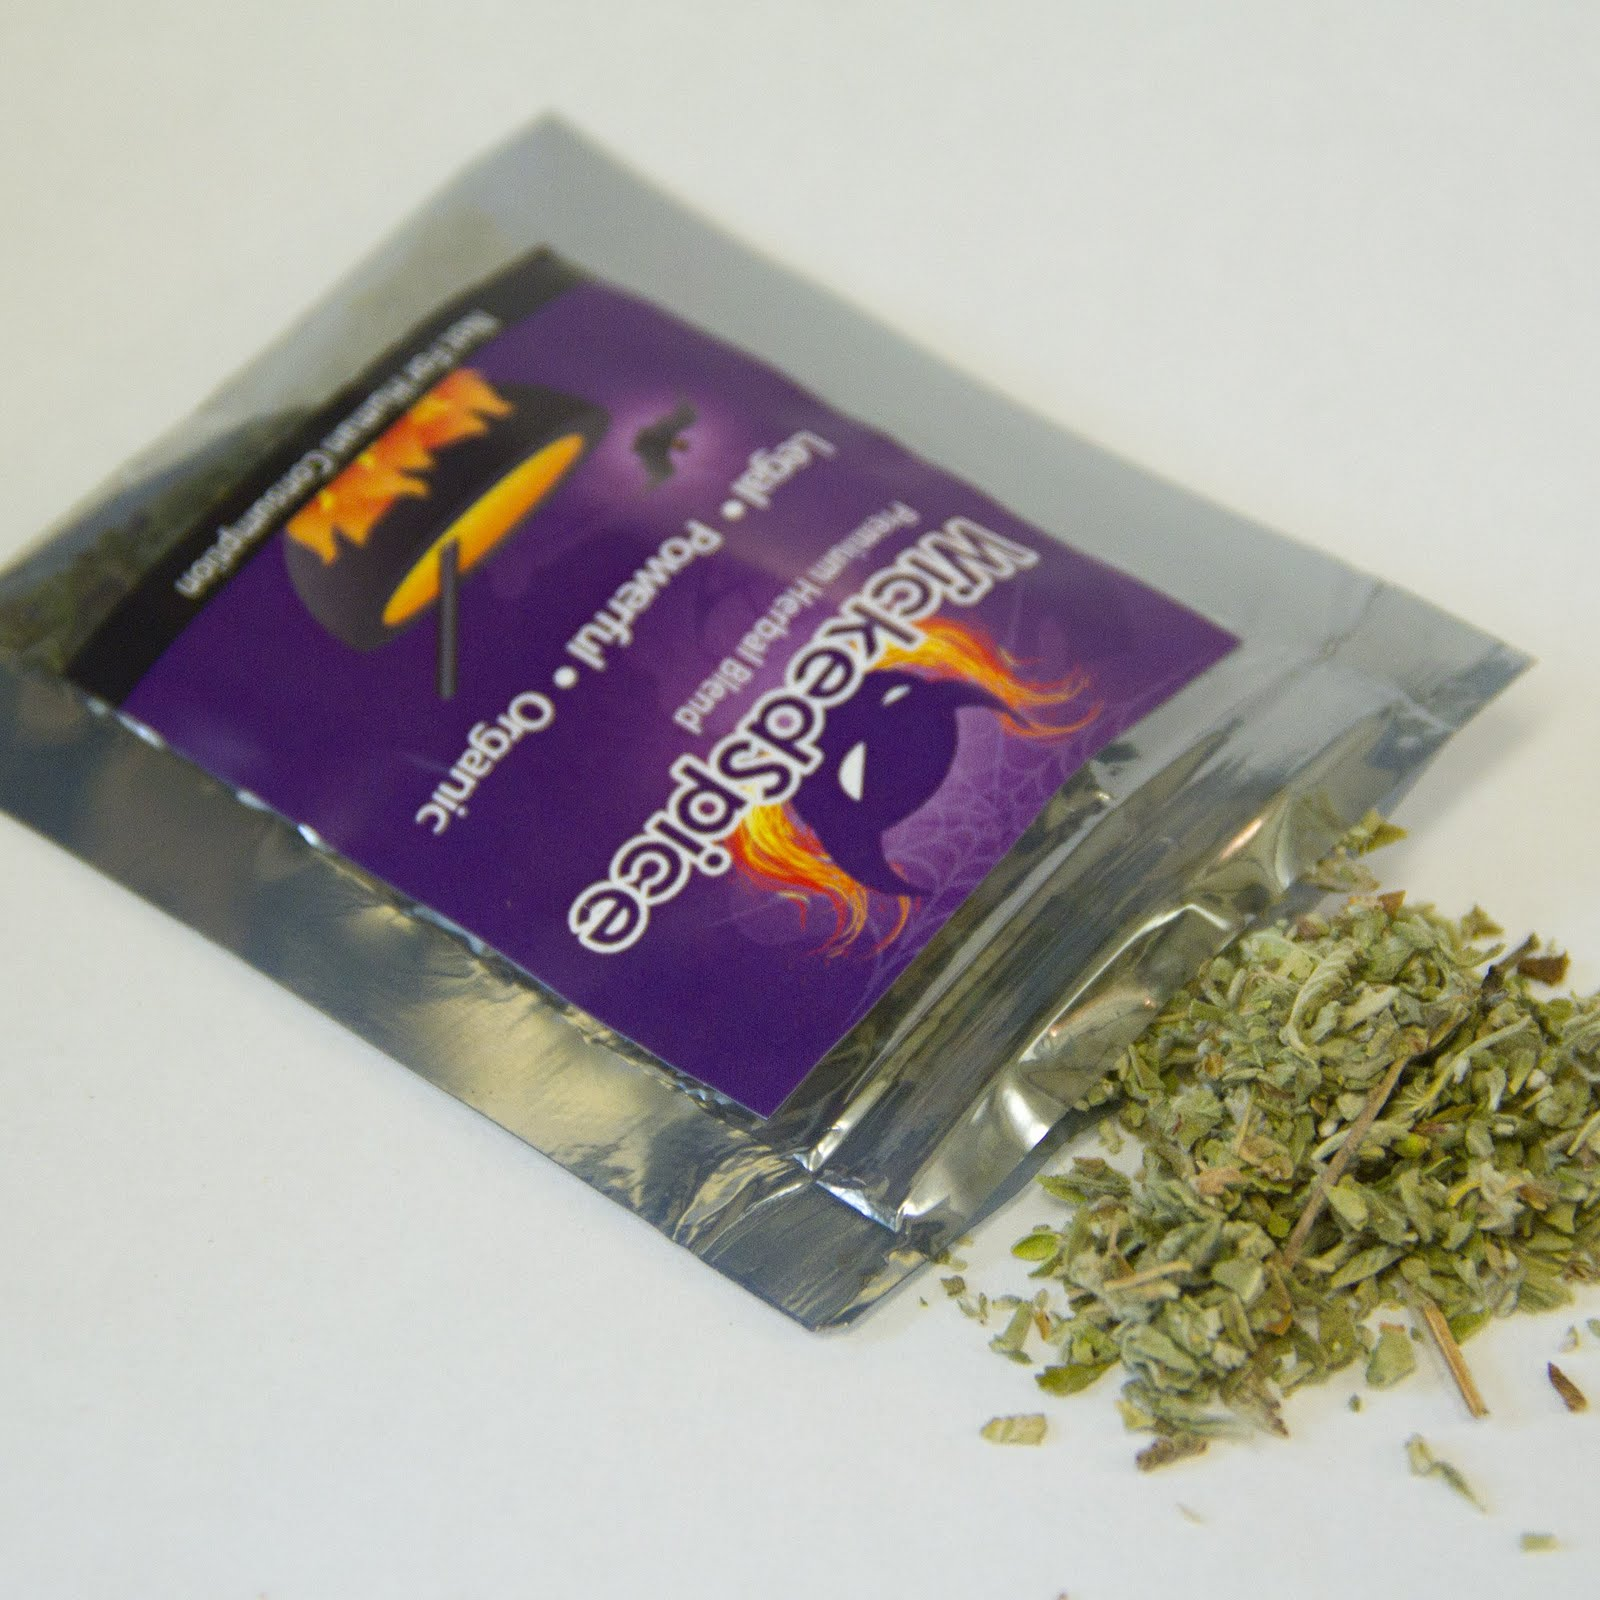 Wicked Herbal Incense Spice Review